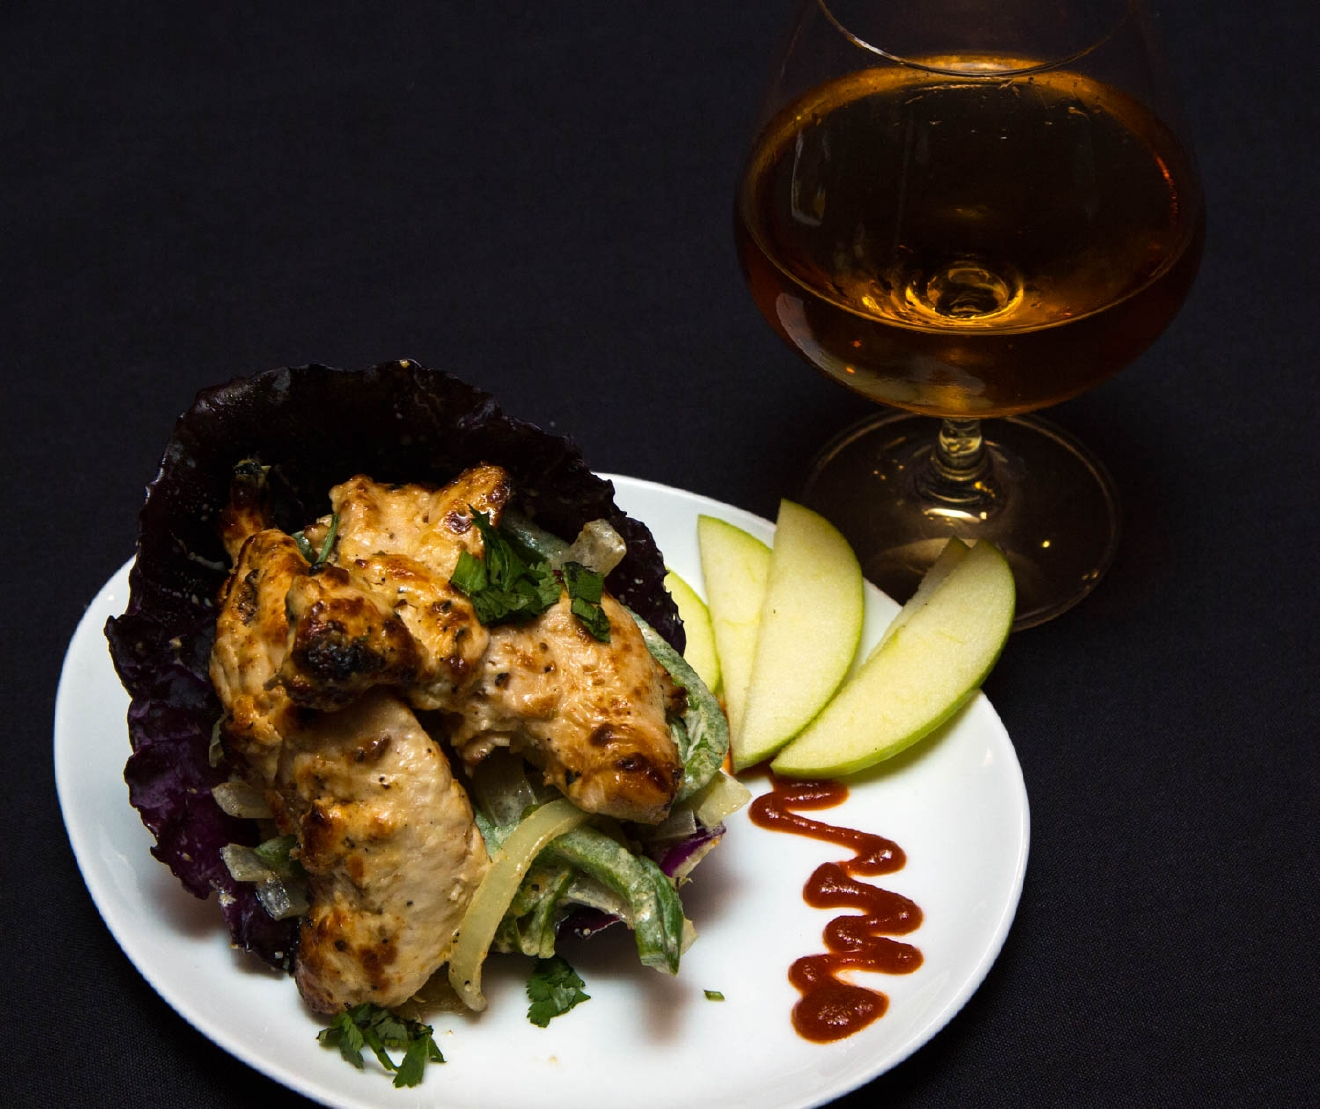 Chicken of Afghani served with caramelized onion and peppers  and a glass of neat scotch. / Image: Catherine Viox / Published: 11.4.16